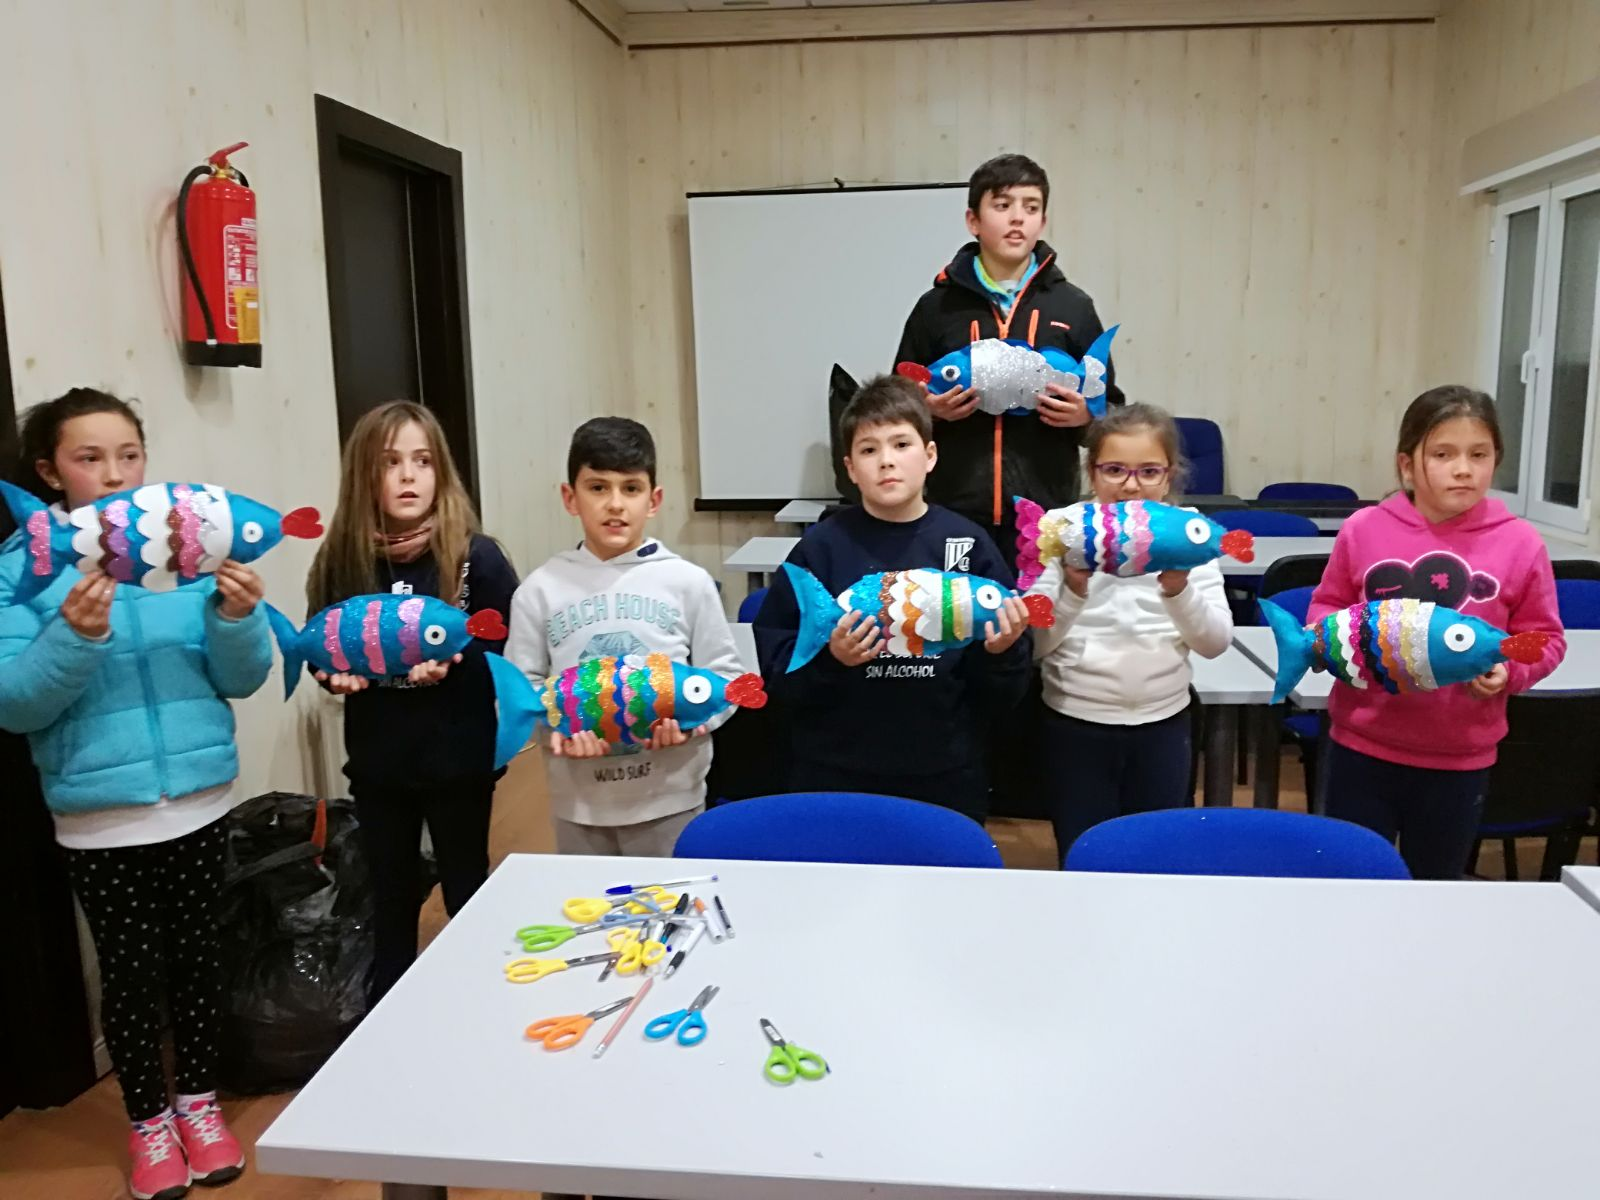 images/stories/taller de sardina.jpg